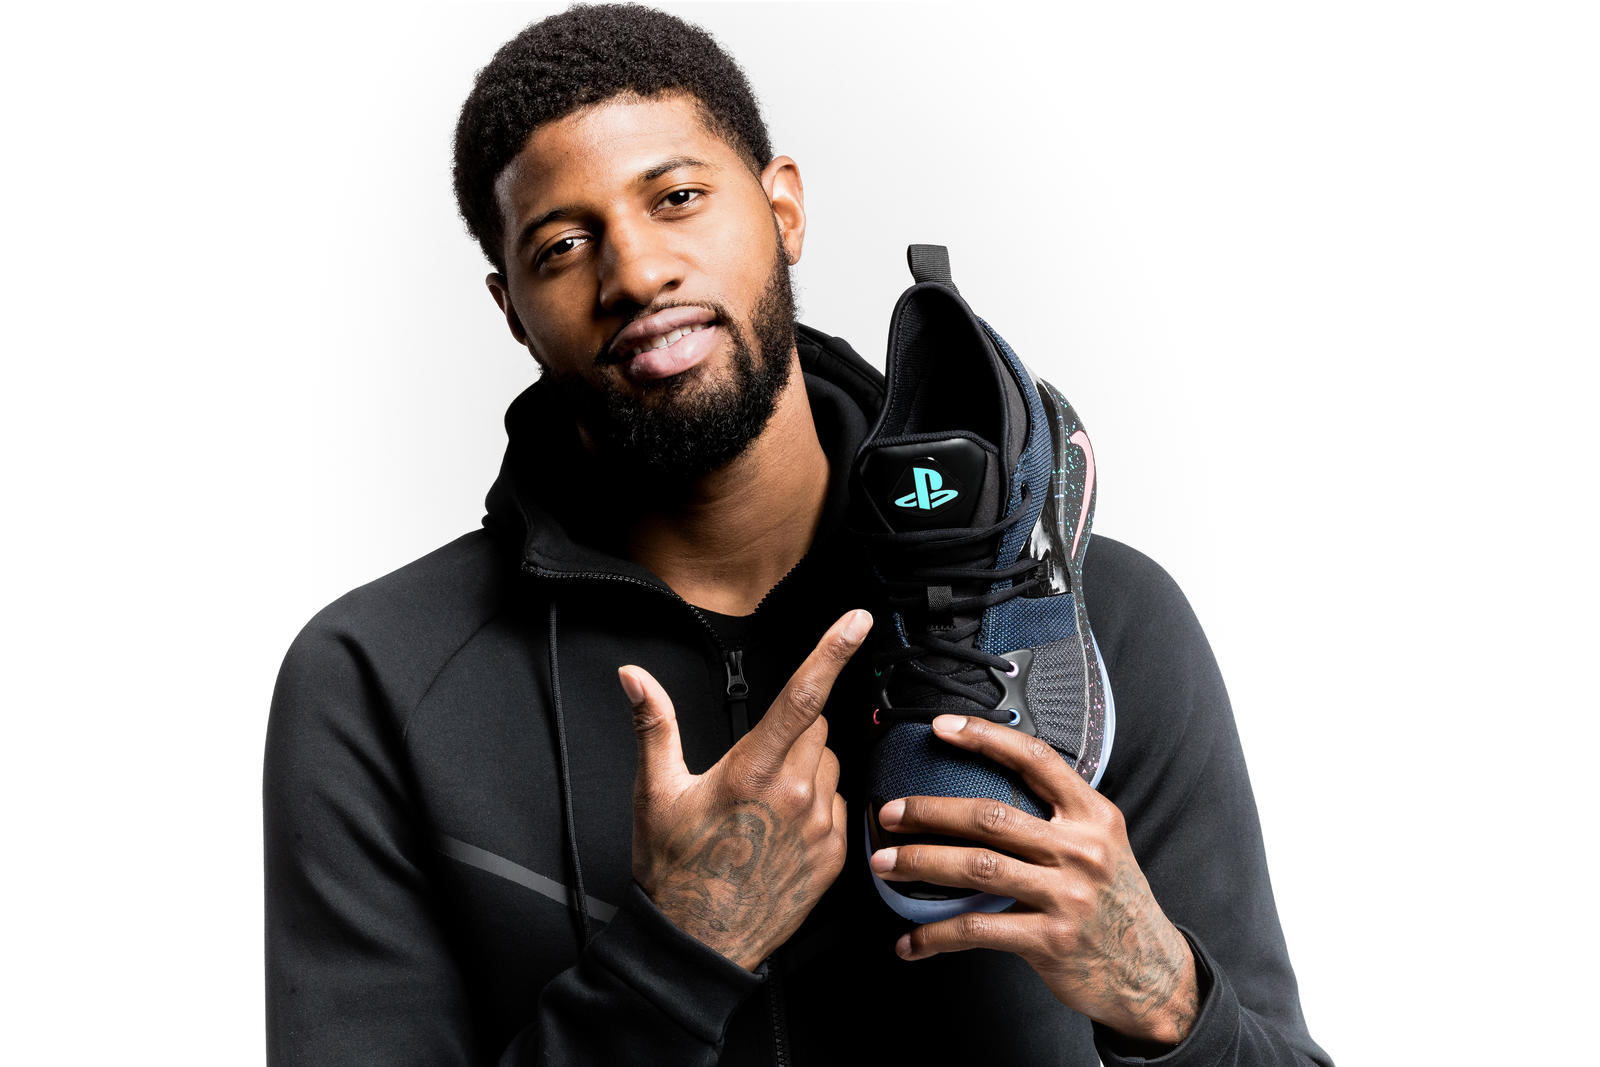 low priced 6a6e7 5eea3 INTRODUCING PAUL GEORGE'S SECOND SIGNATURE SHOE, THE PG2 ...